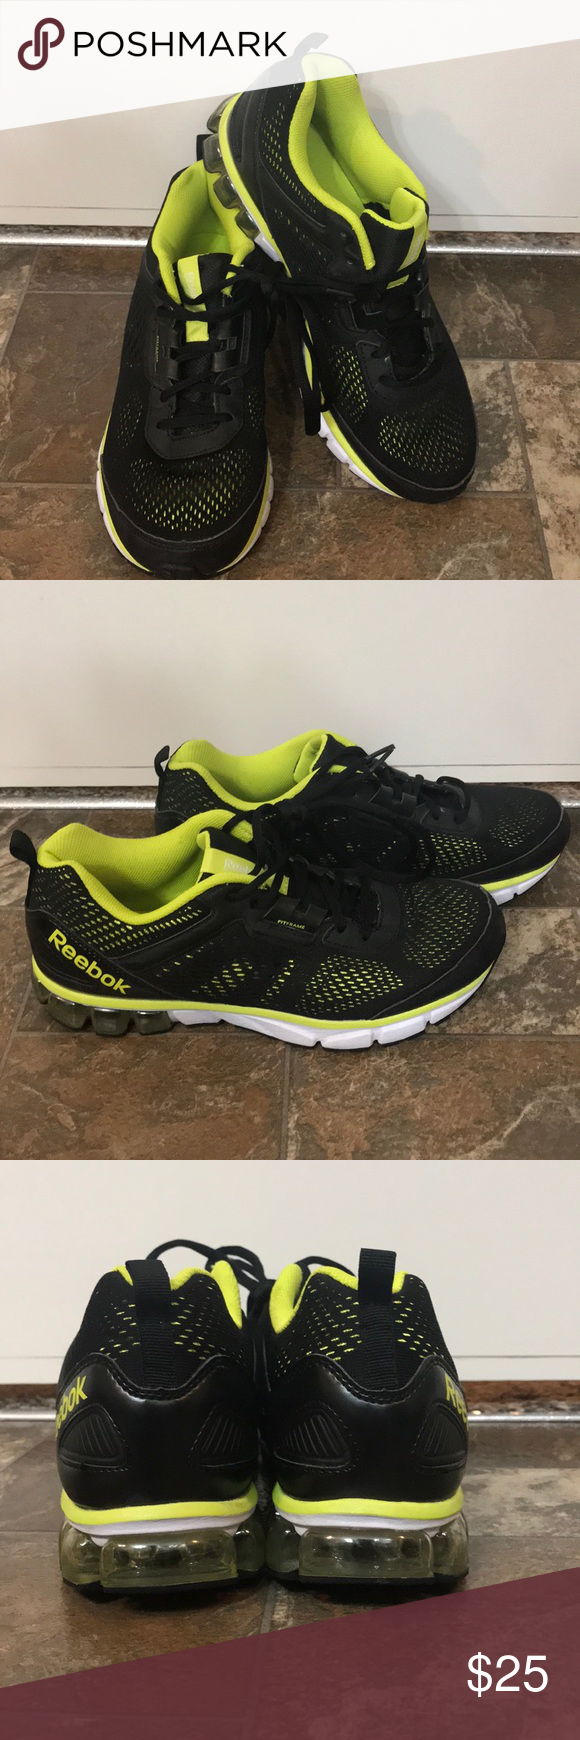 f093600b22a Reebok running shoe Black and neon green mens Reebok running shoe in good  condition! Reebok Shoes Athletic Shoes